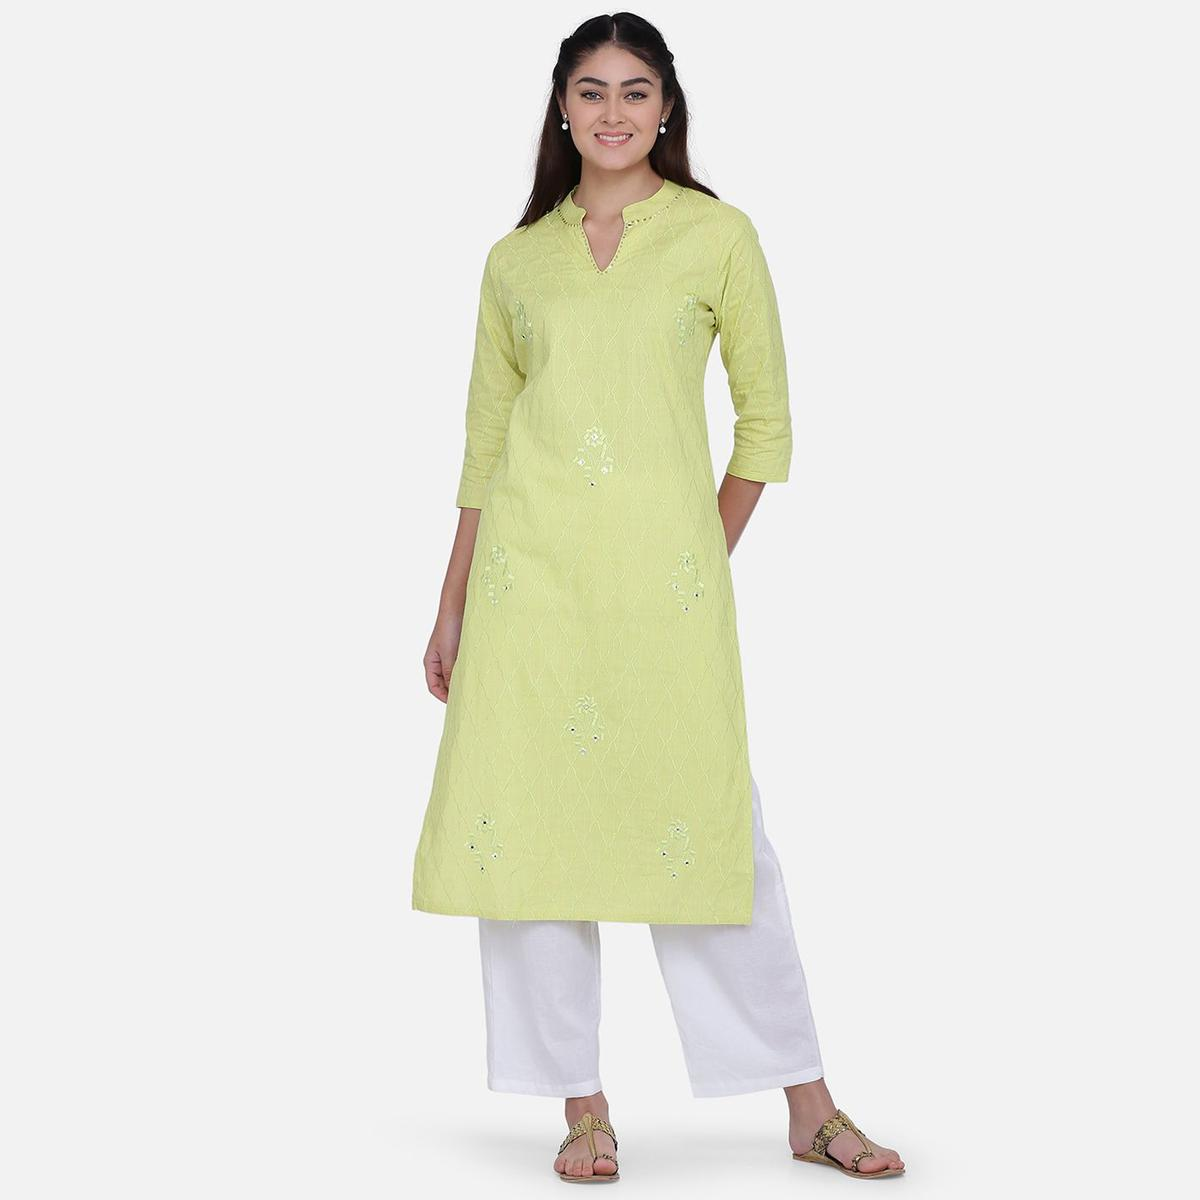 Marvellous Green Colored Casual Wear Embroidery Work Rayon Straight Kurti-Pant Set